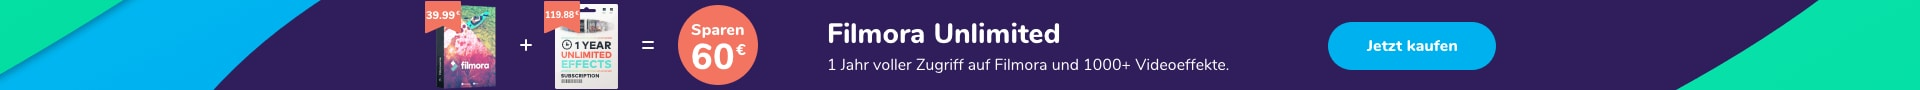 filmora unlimited plan